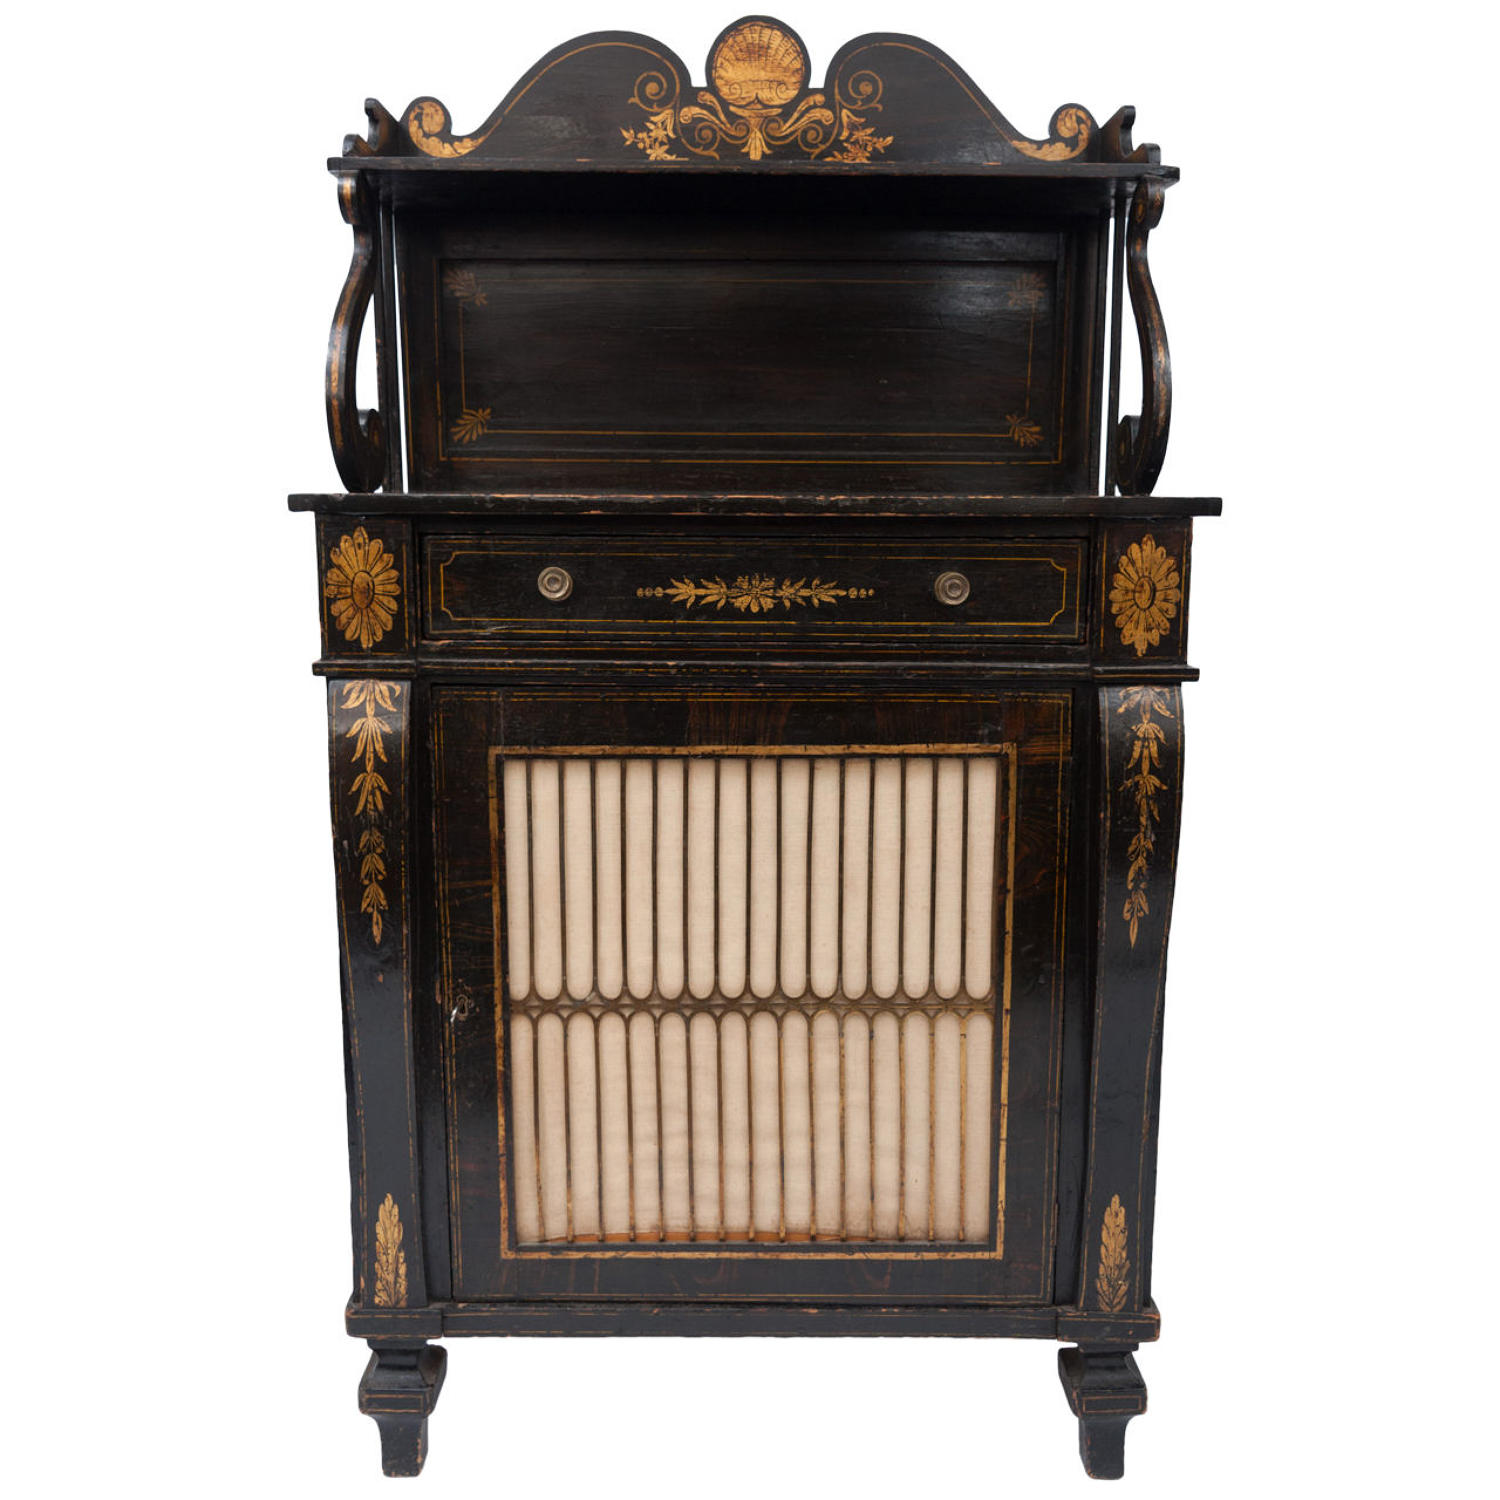 Regency black and gilt decorated chiffonier